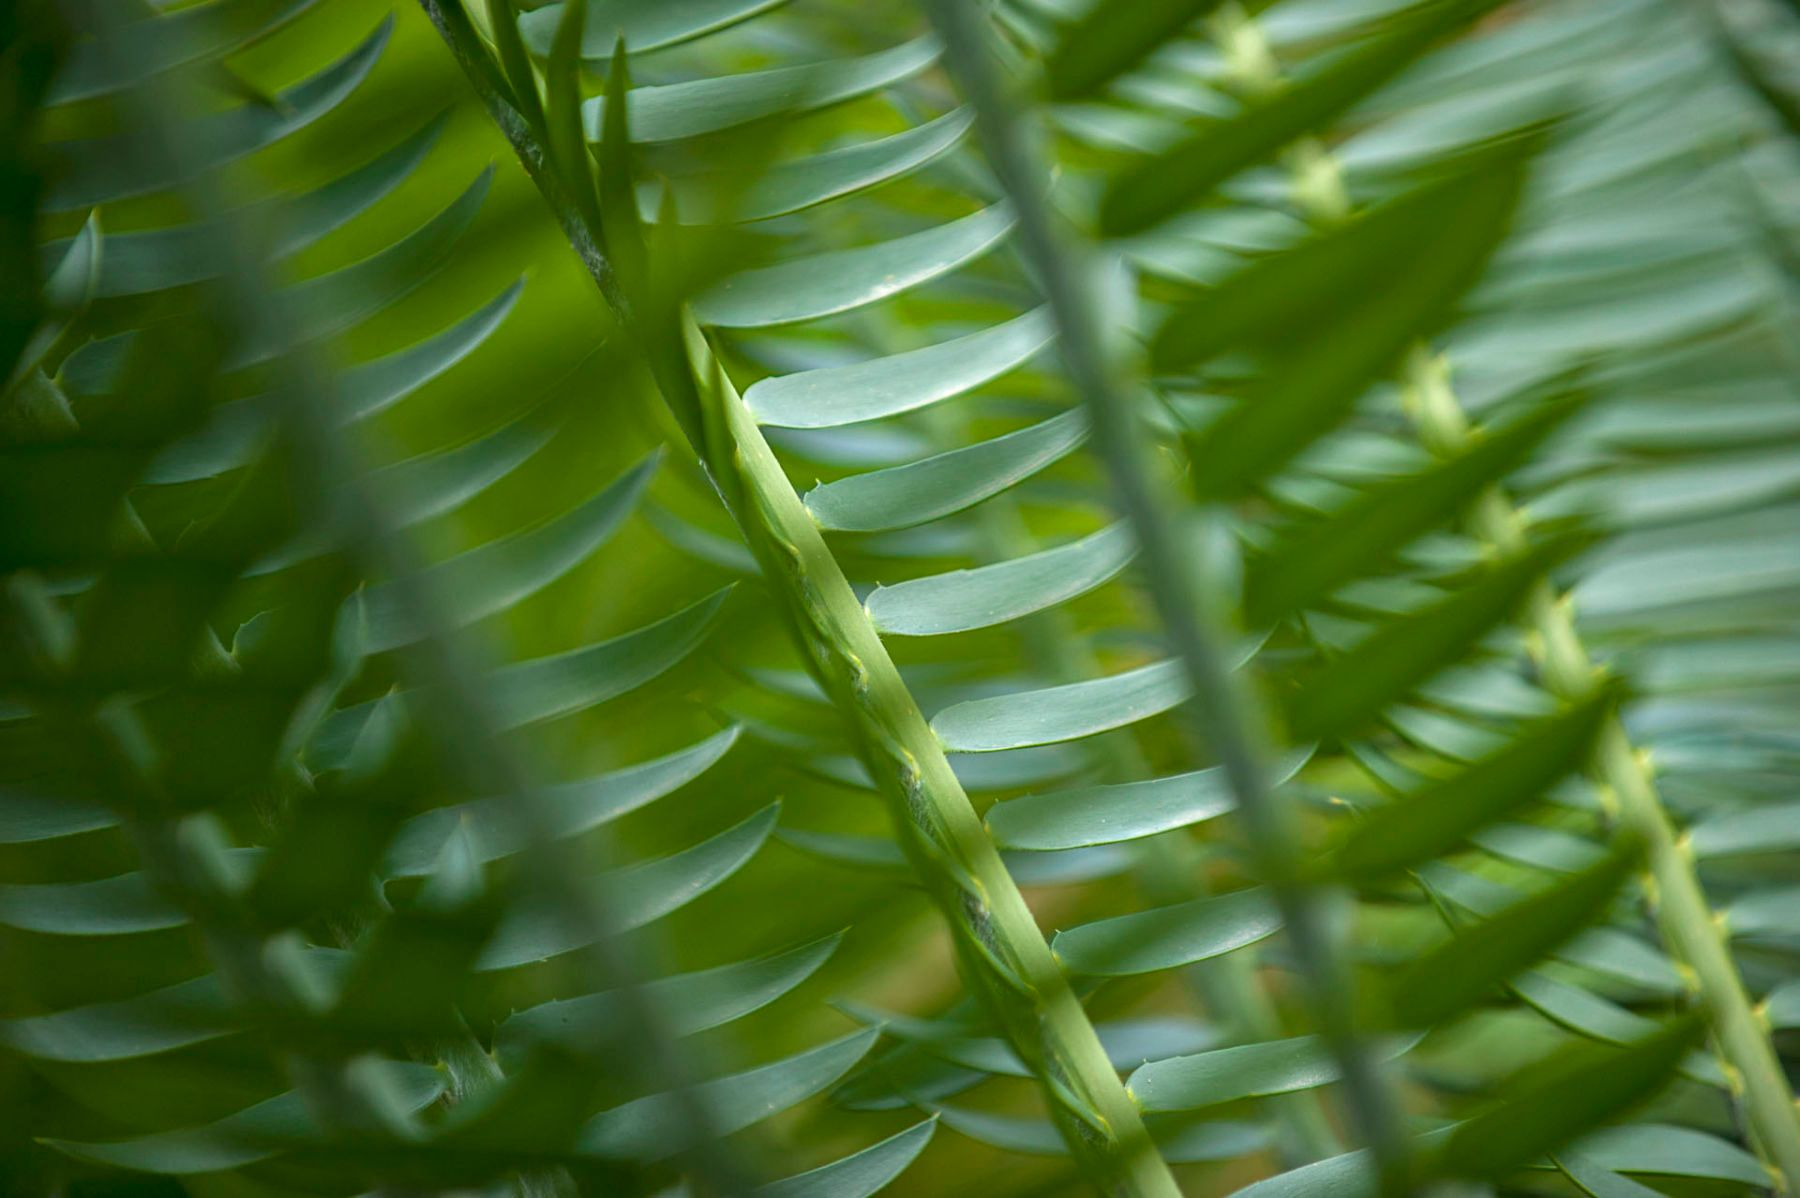 Abstract and Blurred: Fern